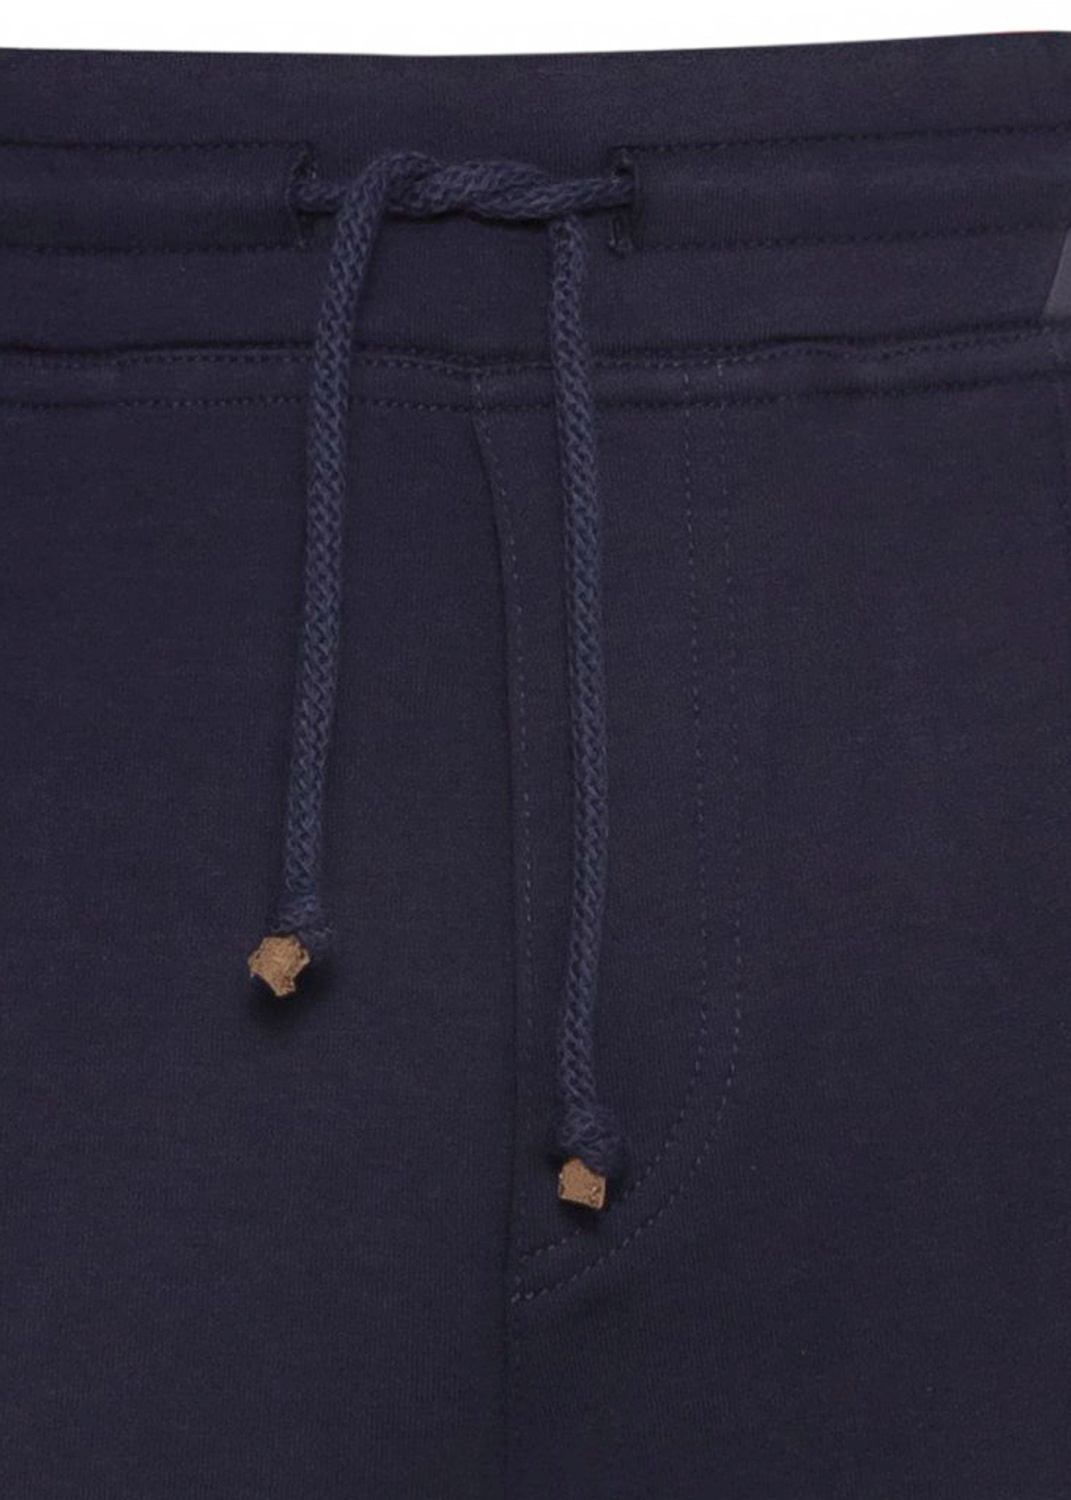 Cotton Jersey Pants image number 2